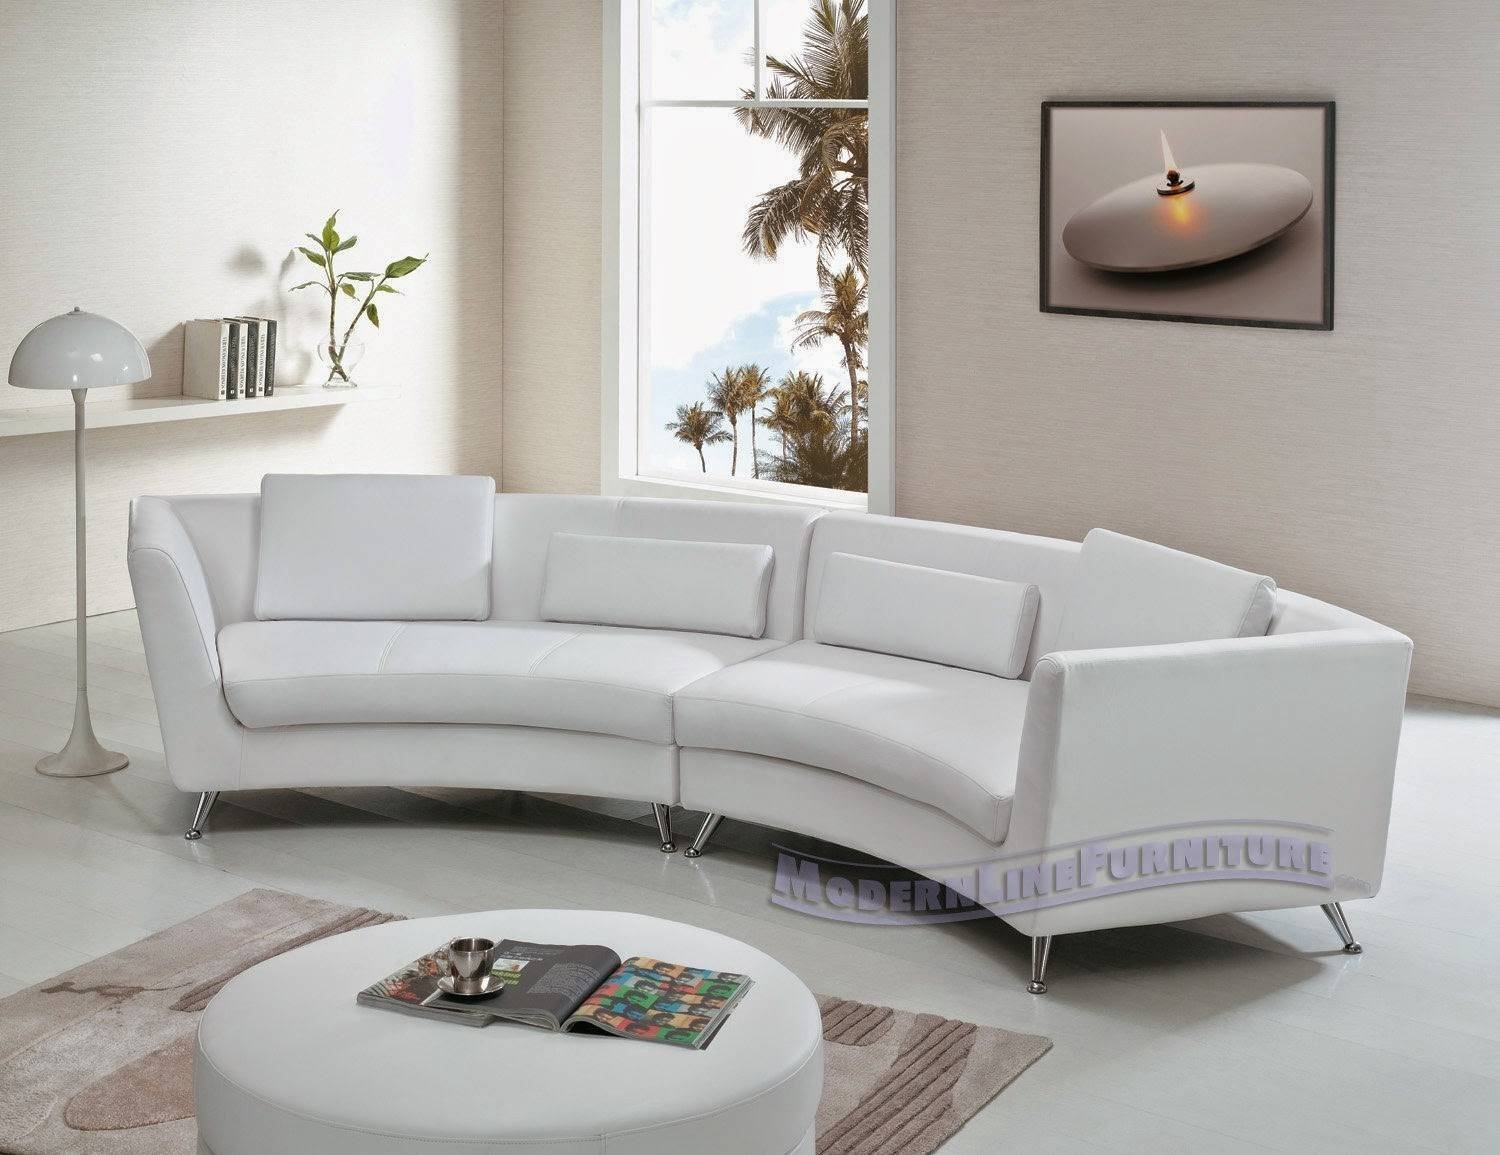 Sofa Curved: Curved Sofa For Bay Window pertaining to Sofas for Bay Window (Image 13 of 15)